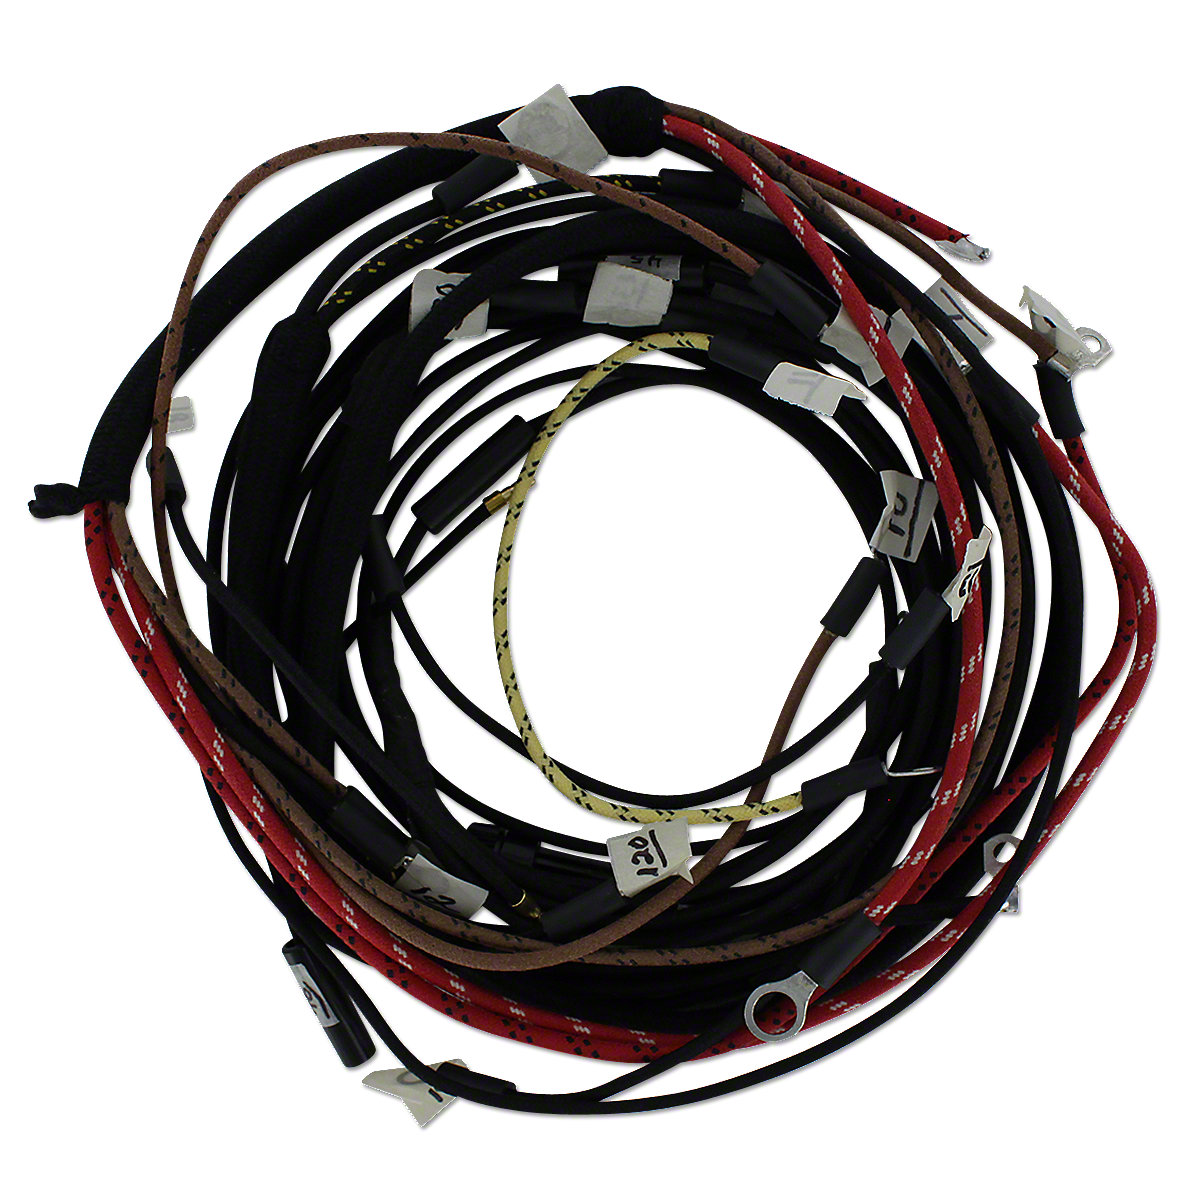 mfs2272 wiring harness for massey ferguson to30. Black Bedroom Furniture Sets. Home Design Ideas